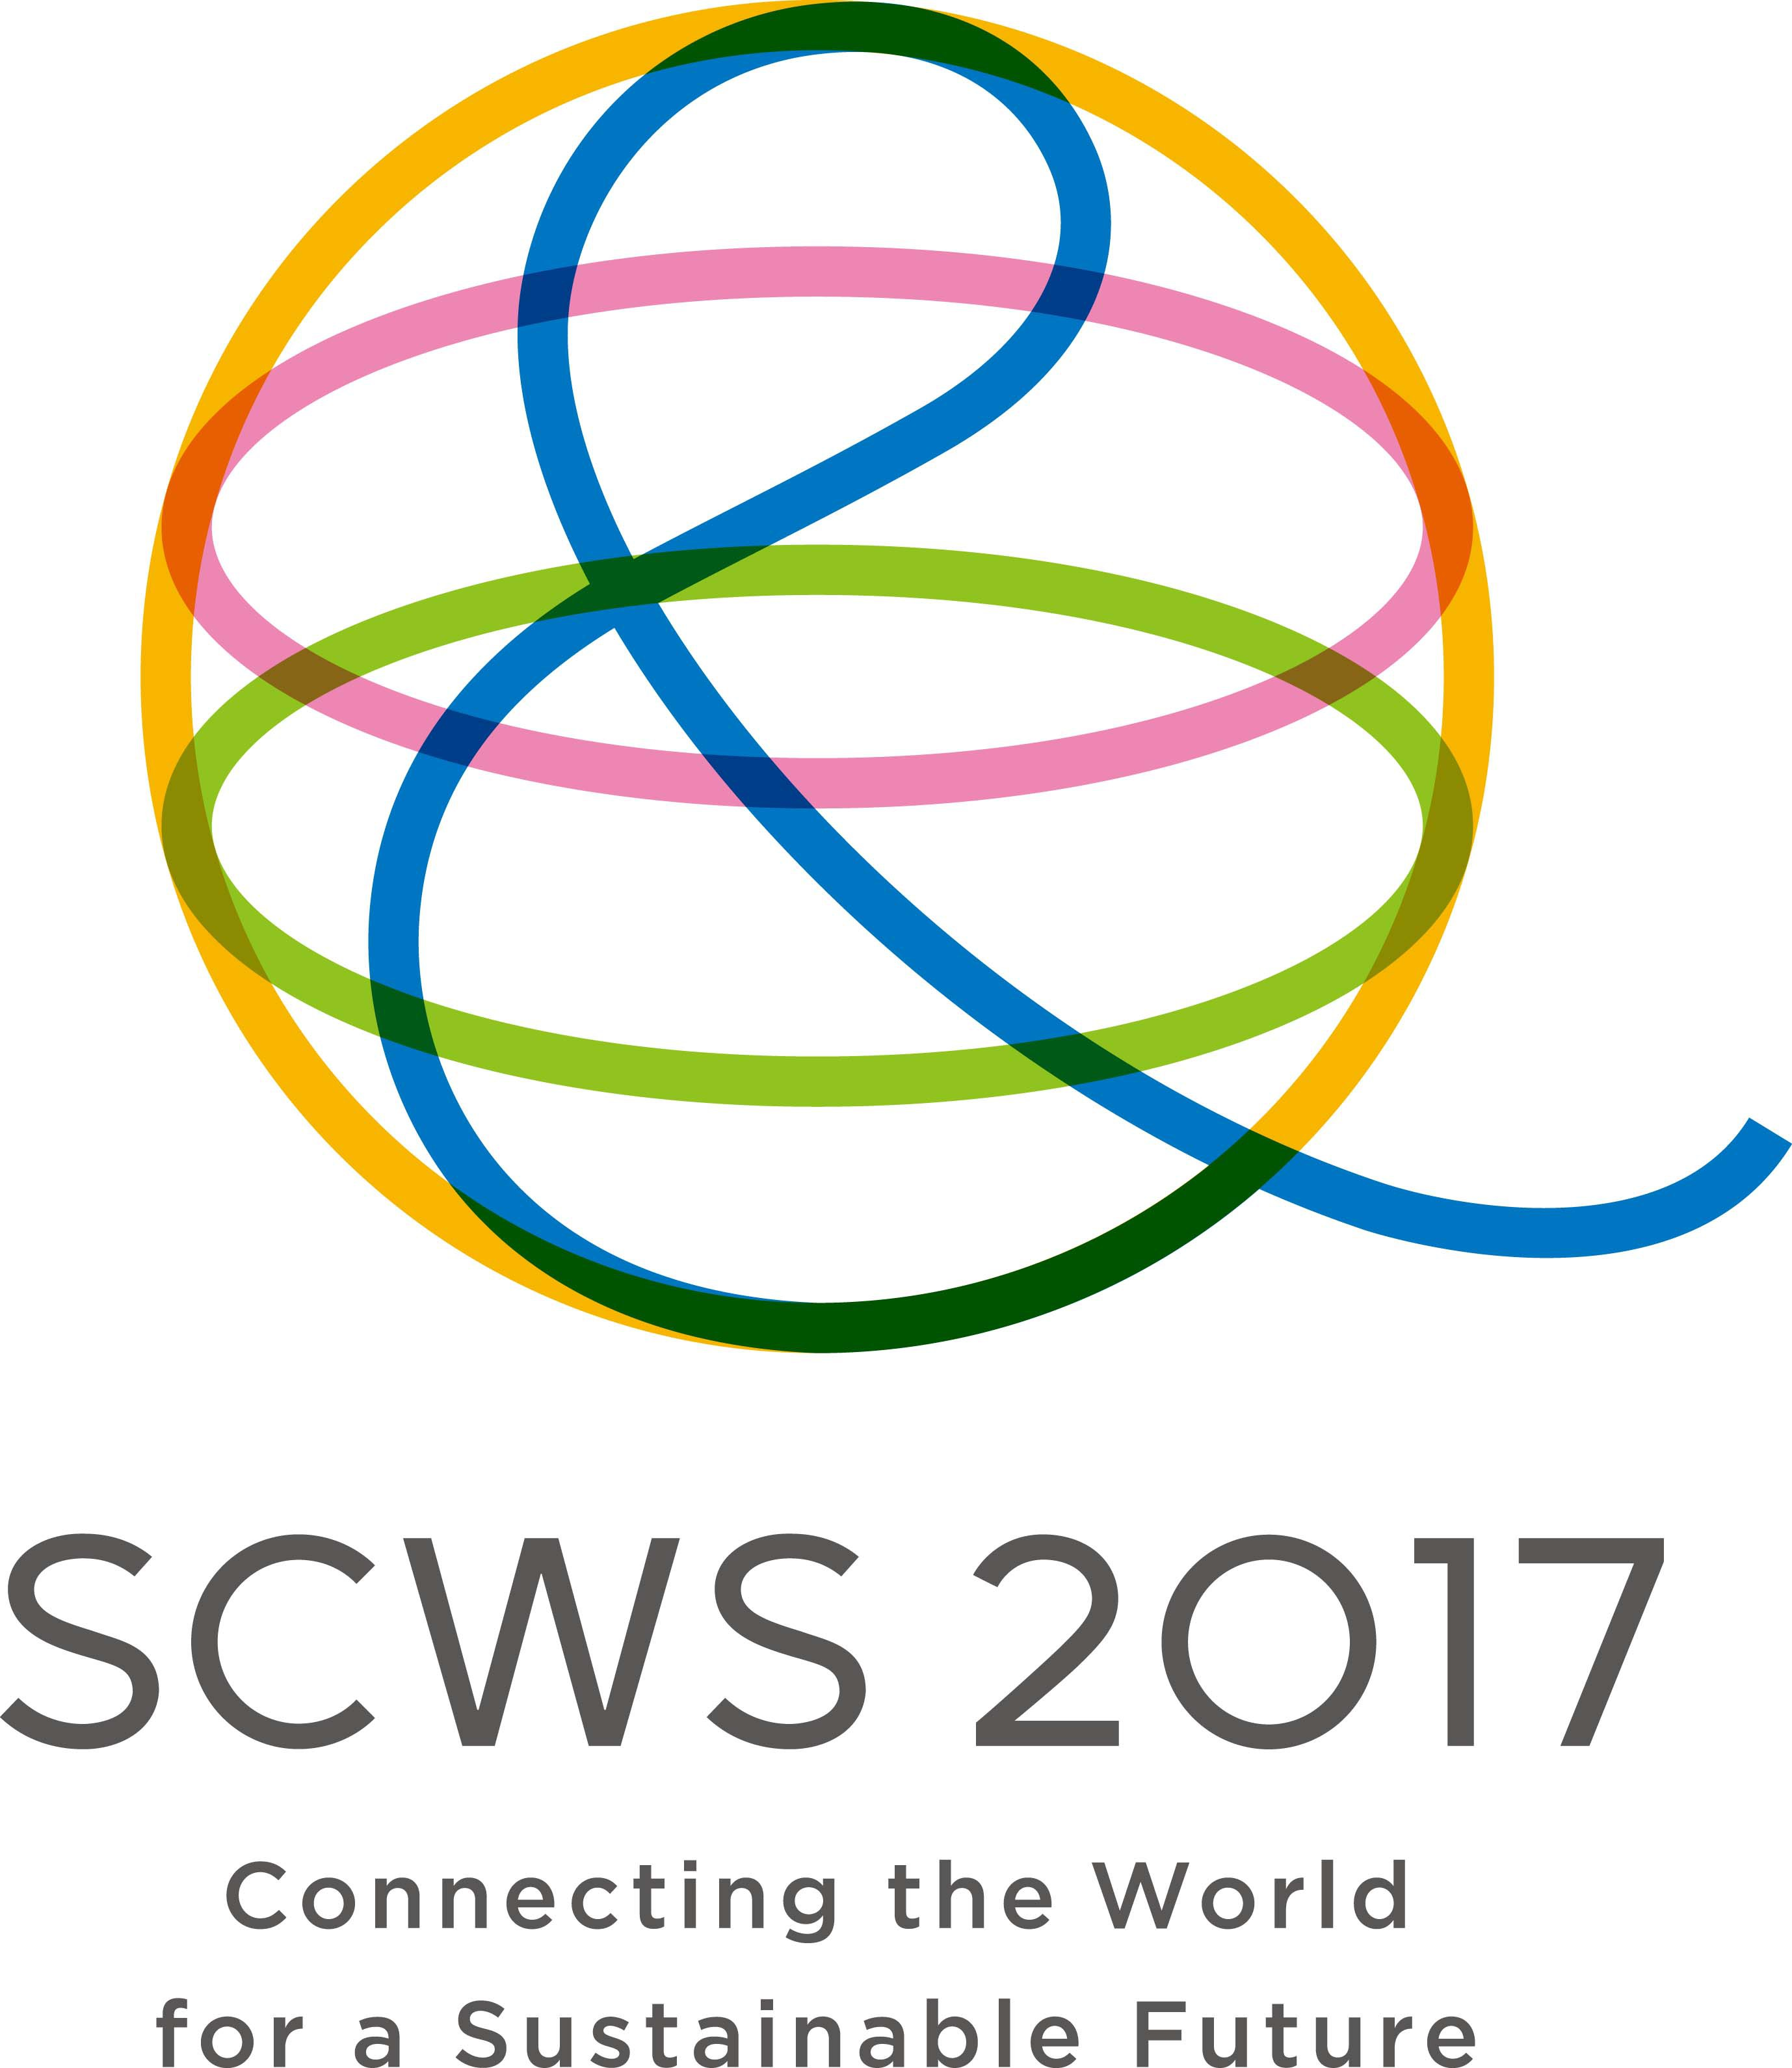 SCWS2017